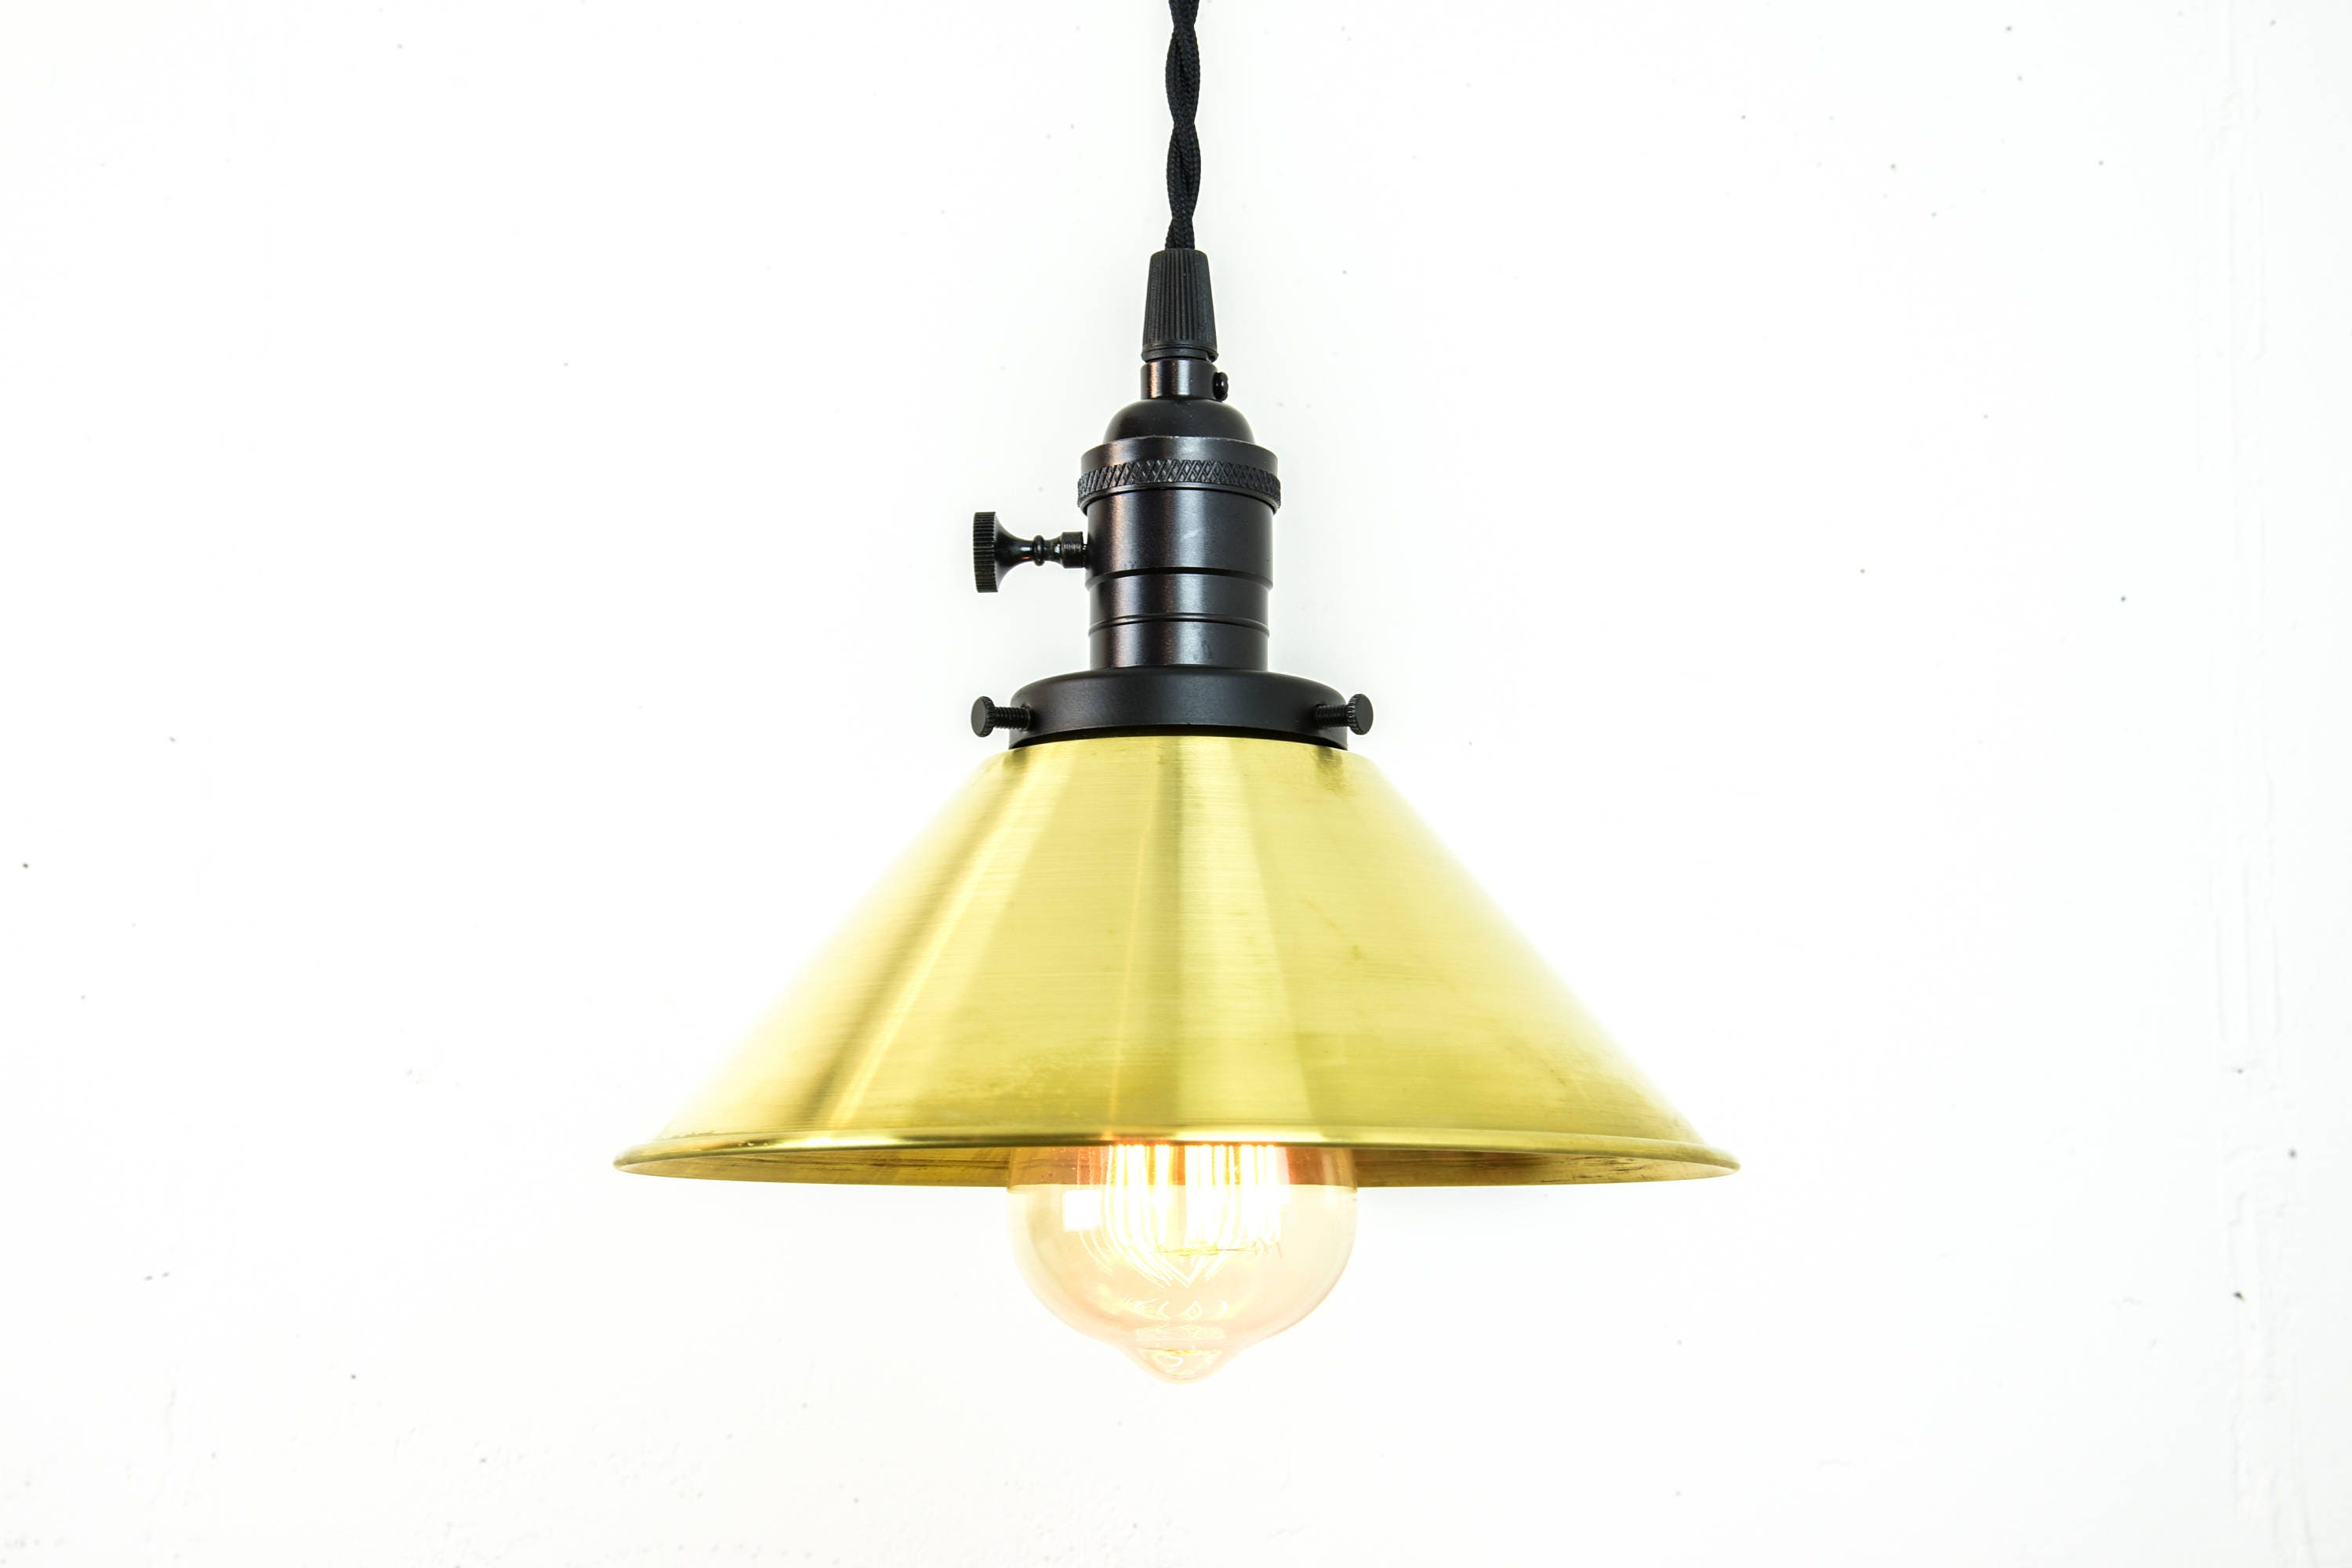 Brass Pendant Light - Hanging Light Fixture - Plug In Pendant Light ...